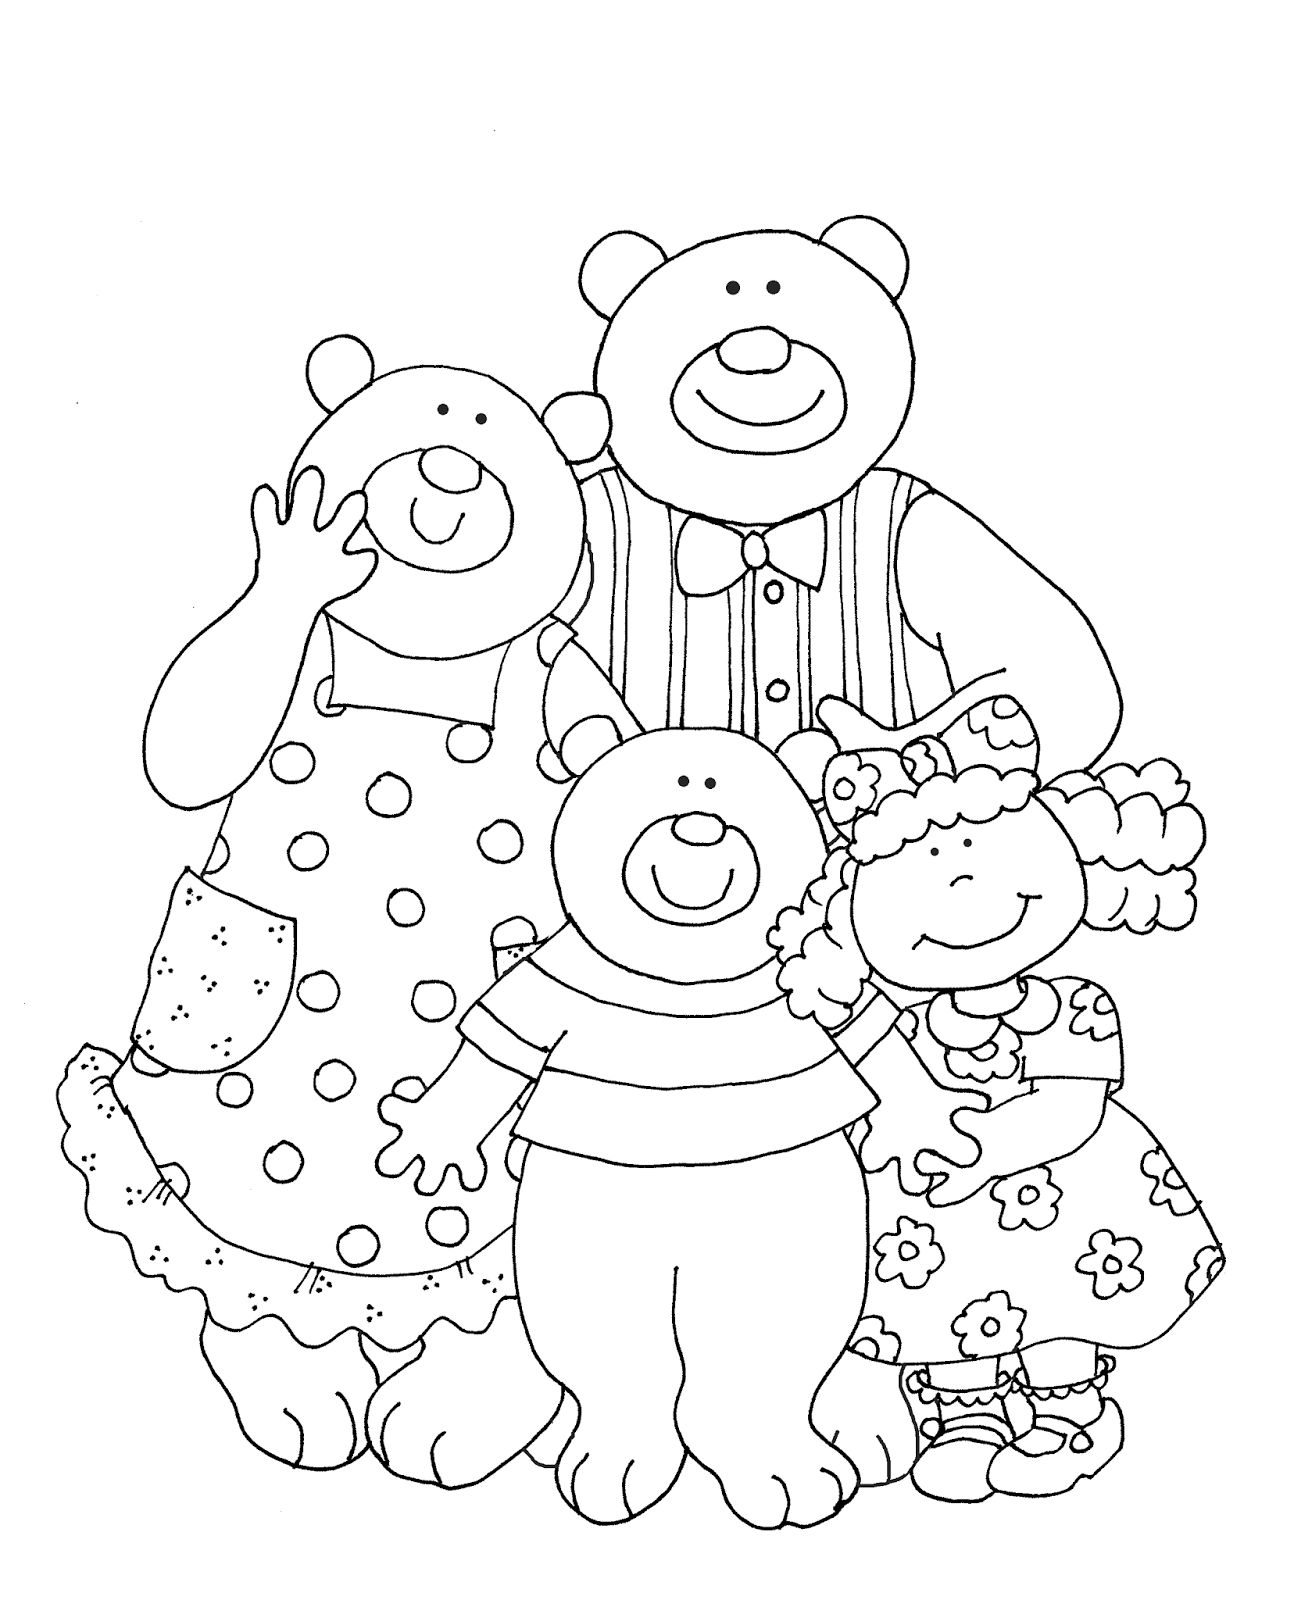 Top Goldilocks And The Three Bears Coloring Page Bear Coloring Pages Goldilocks And The Three Bears Coloring Pages